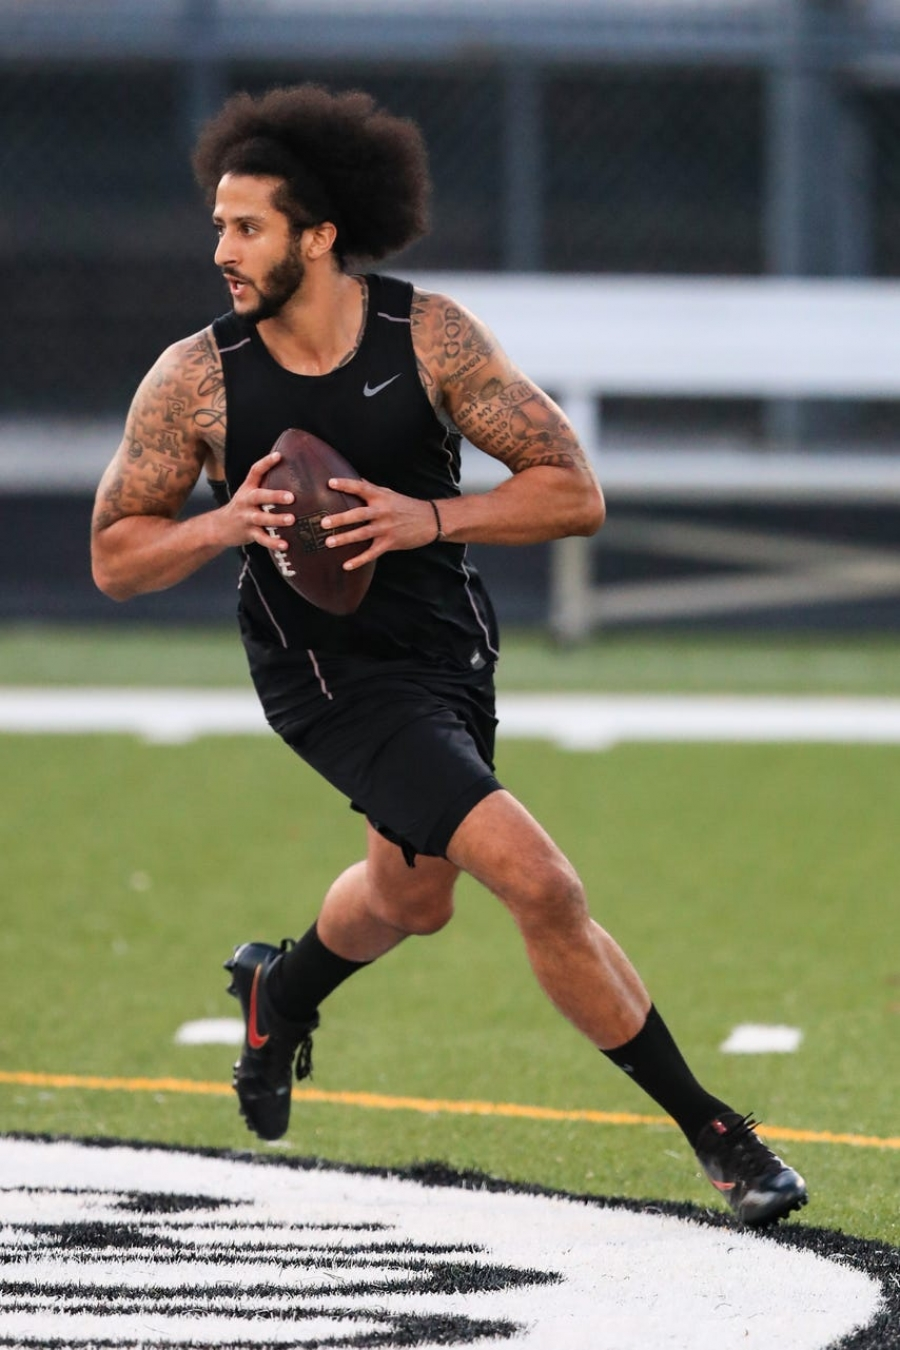 After scrapping NFL workout for his own, Colin Kaepernick speaks: 'I've been ready for three years, I've been denied for three years'